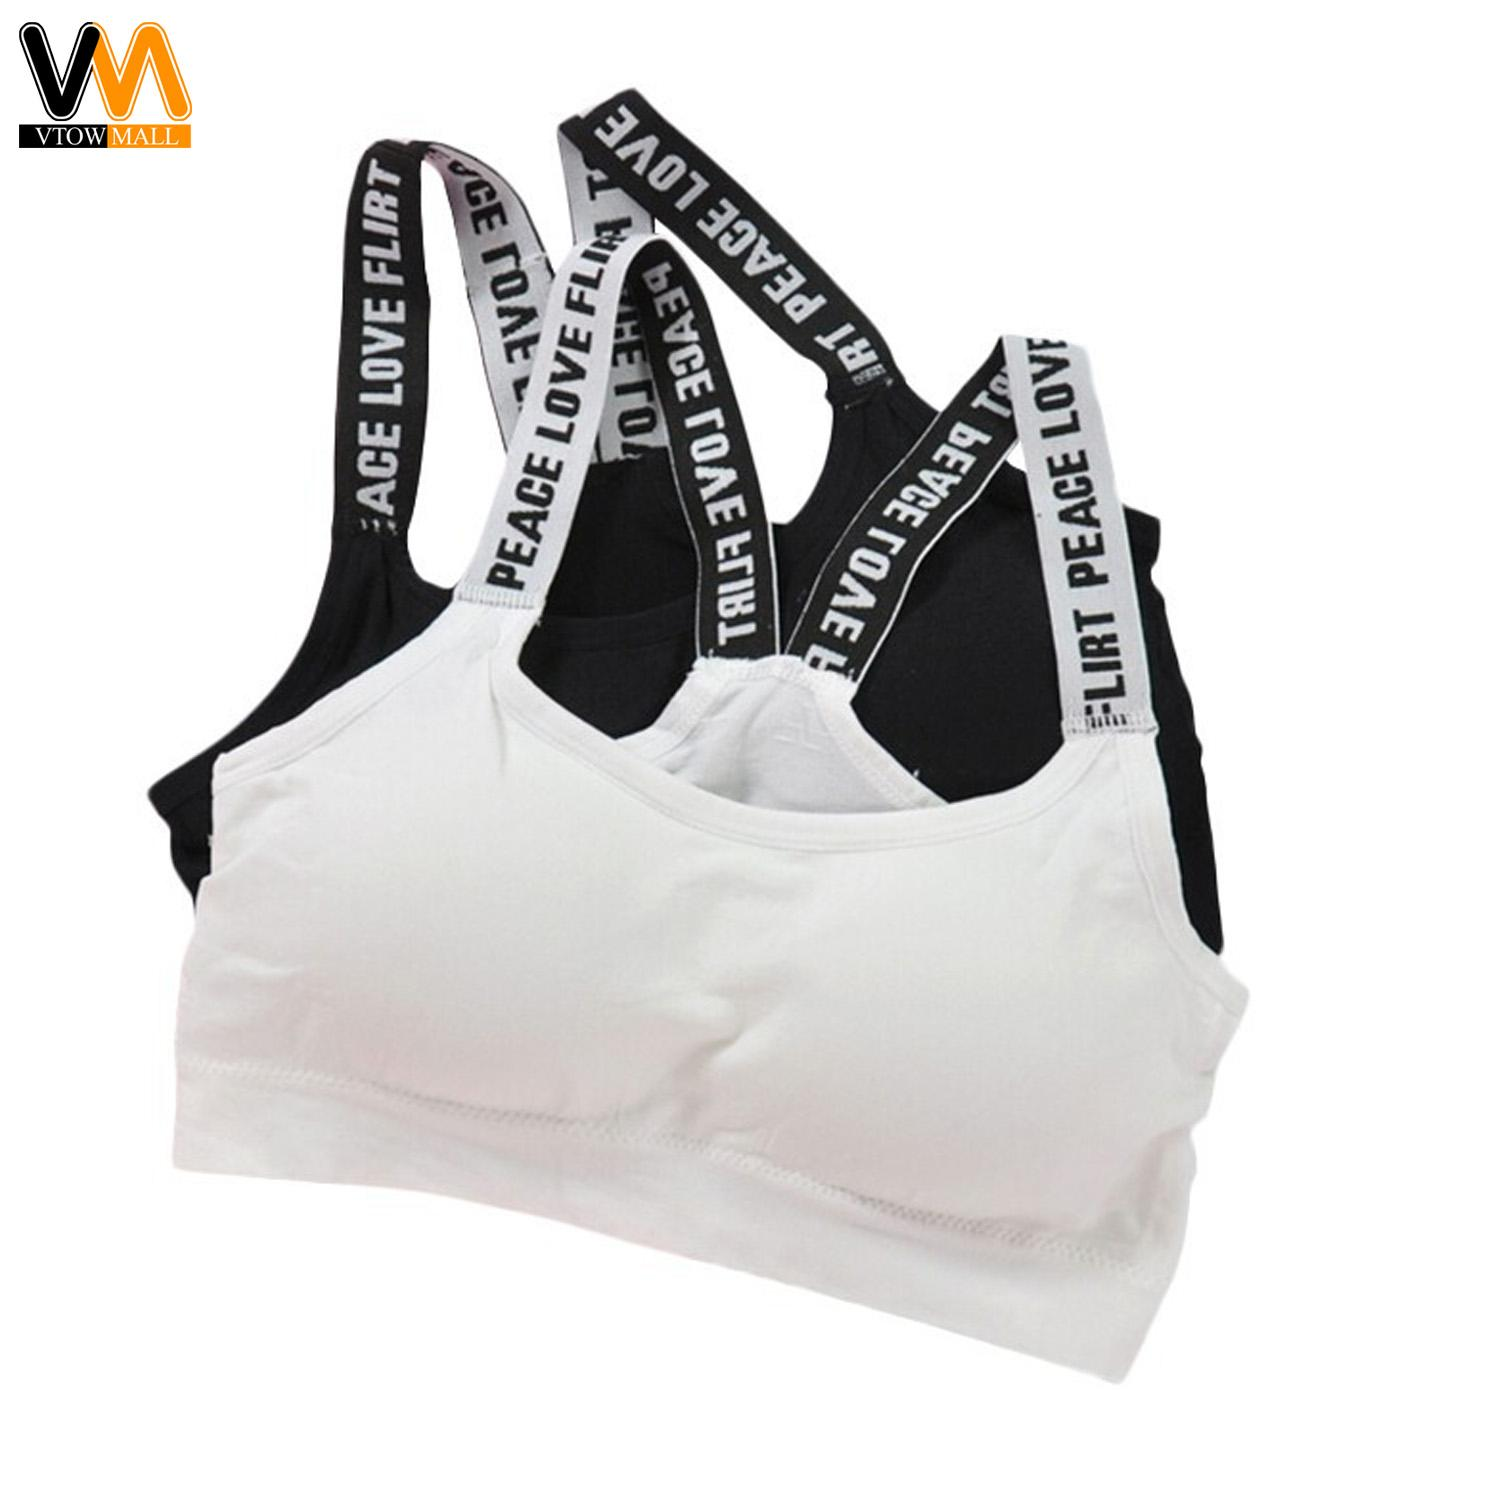 02bd31f3c79 Sports Clothing For Women for sale - Womens Sports Attire online ...